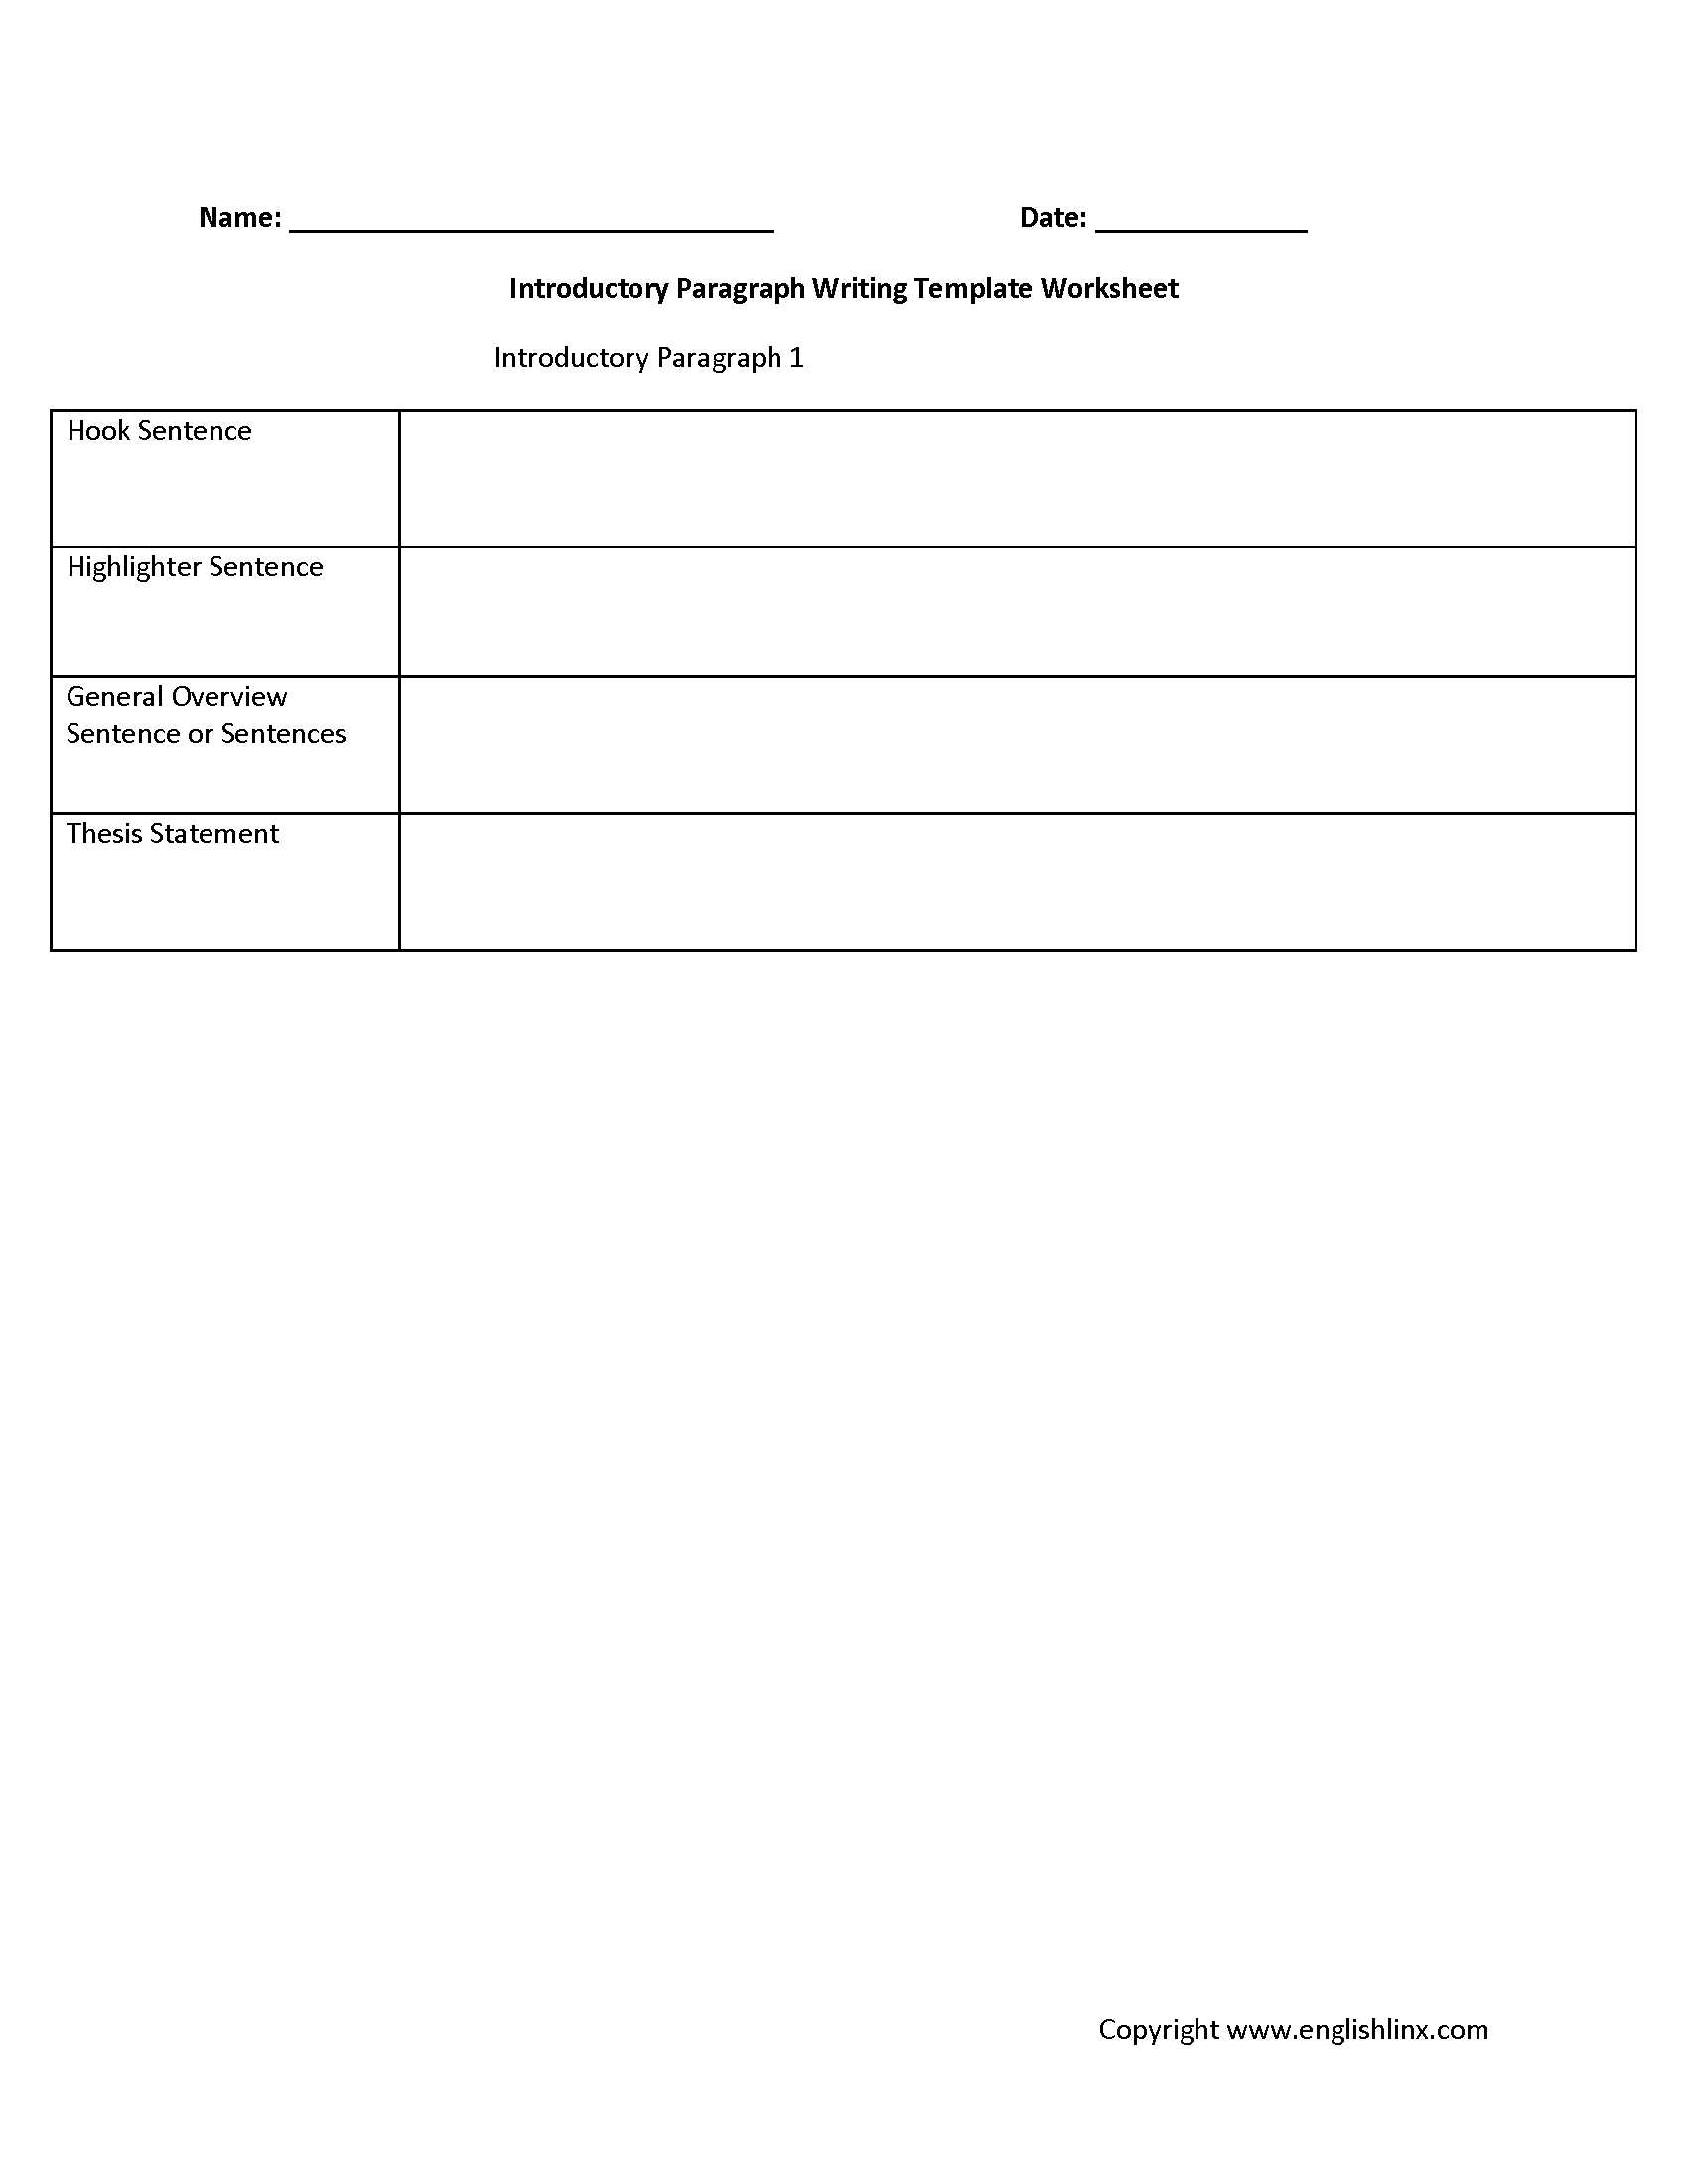 Writing Sentences Worksheets Along with Introductory Paragraph Writing Template Worksheet